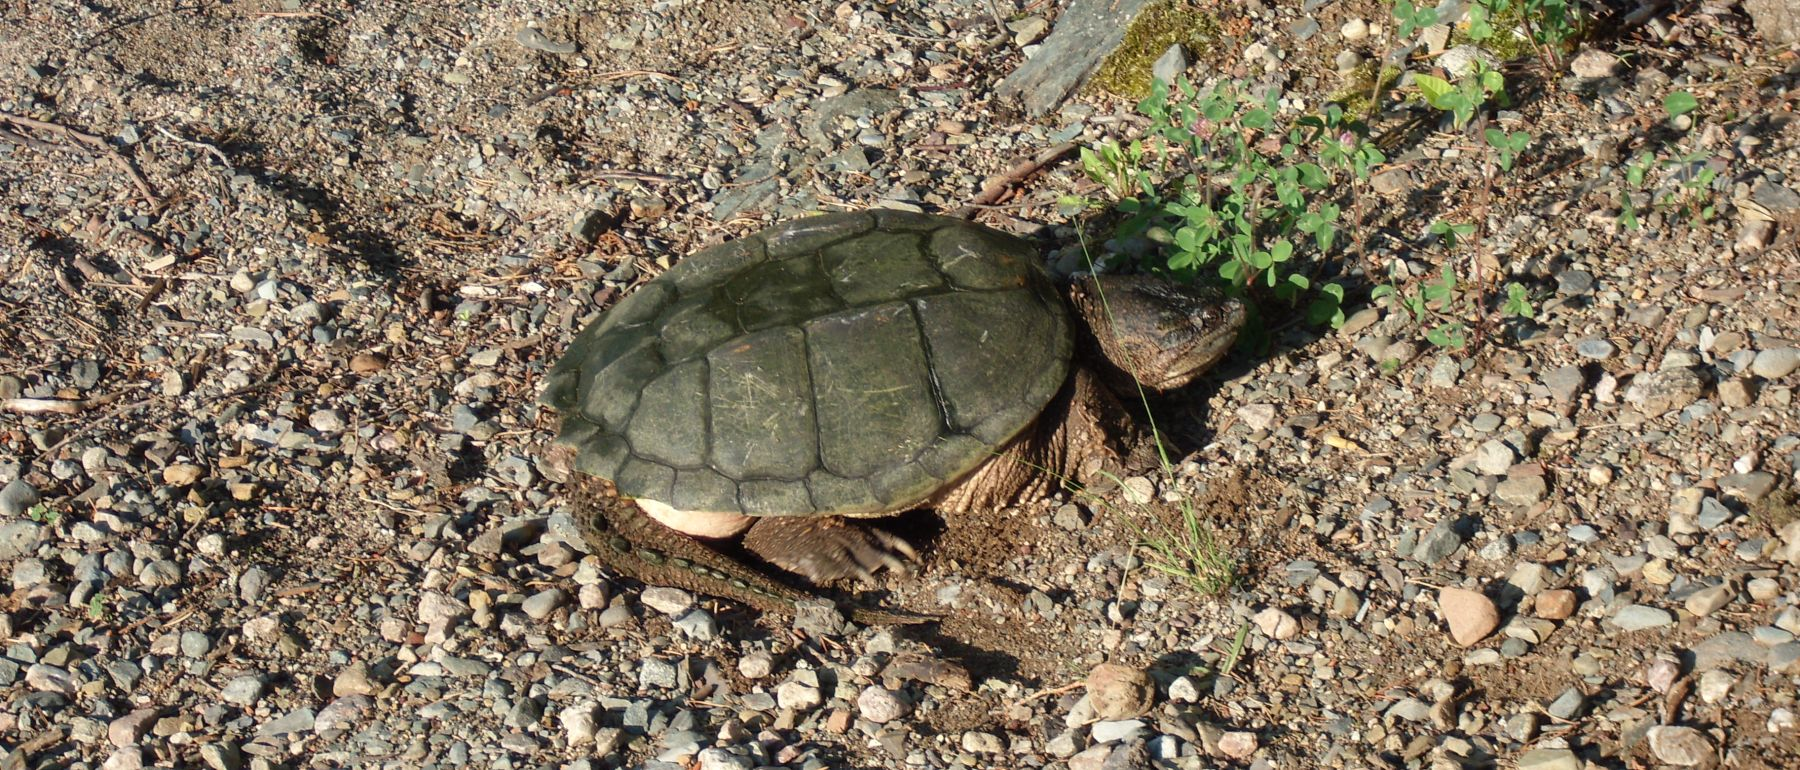 turtle in minnesota during spring